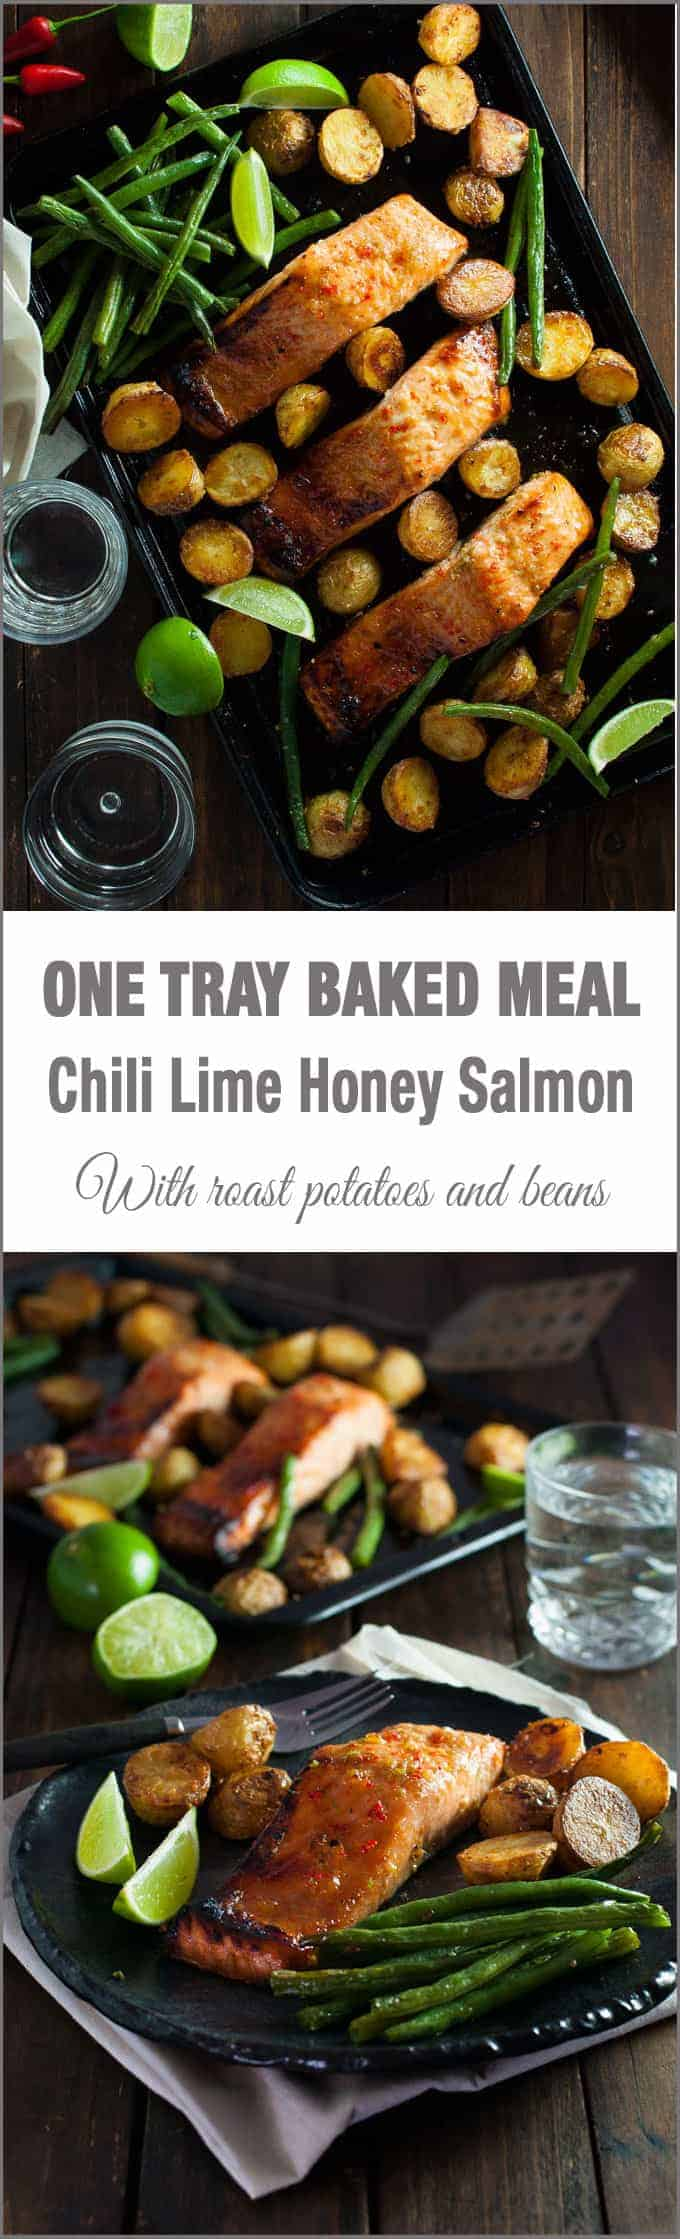 Oven Baked Honey Chili Lime Salmon with Potatoes and Beans (One Tray Meal) - a complete dinner, all made in one tray!